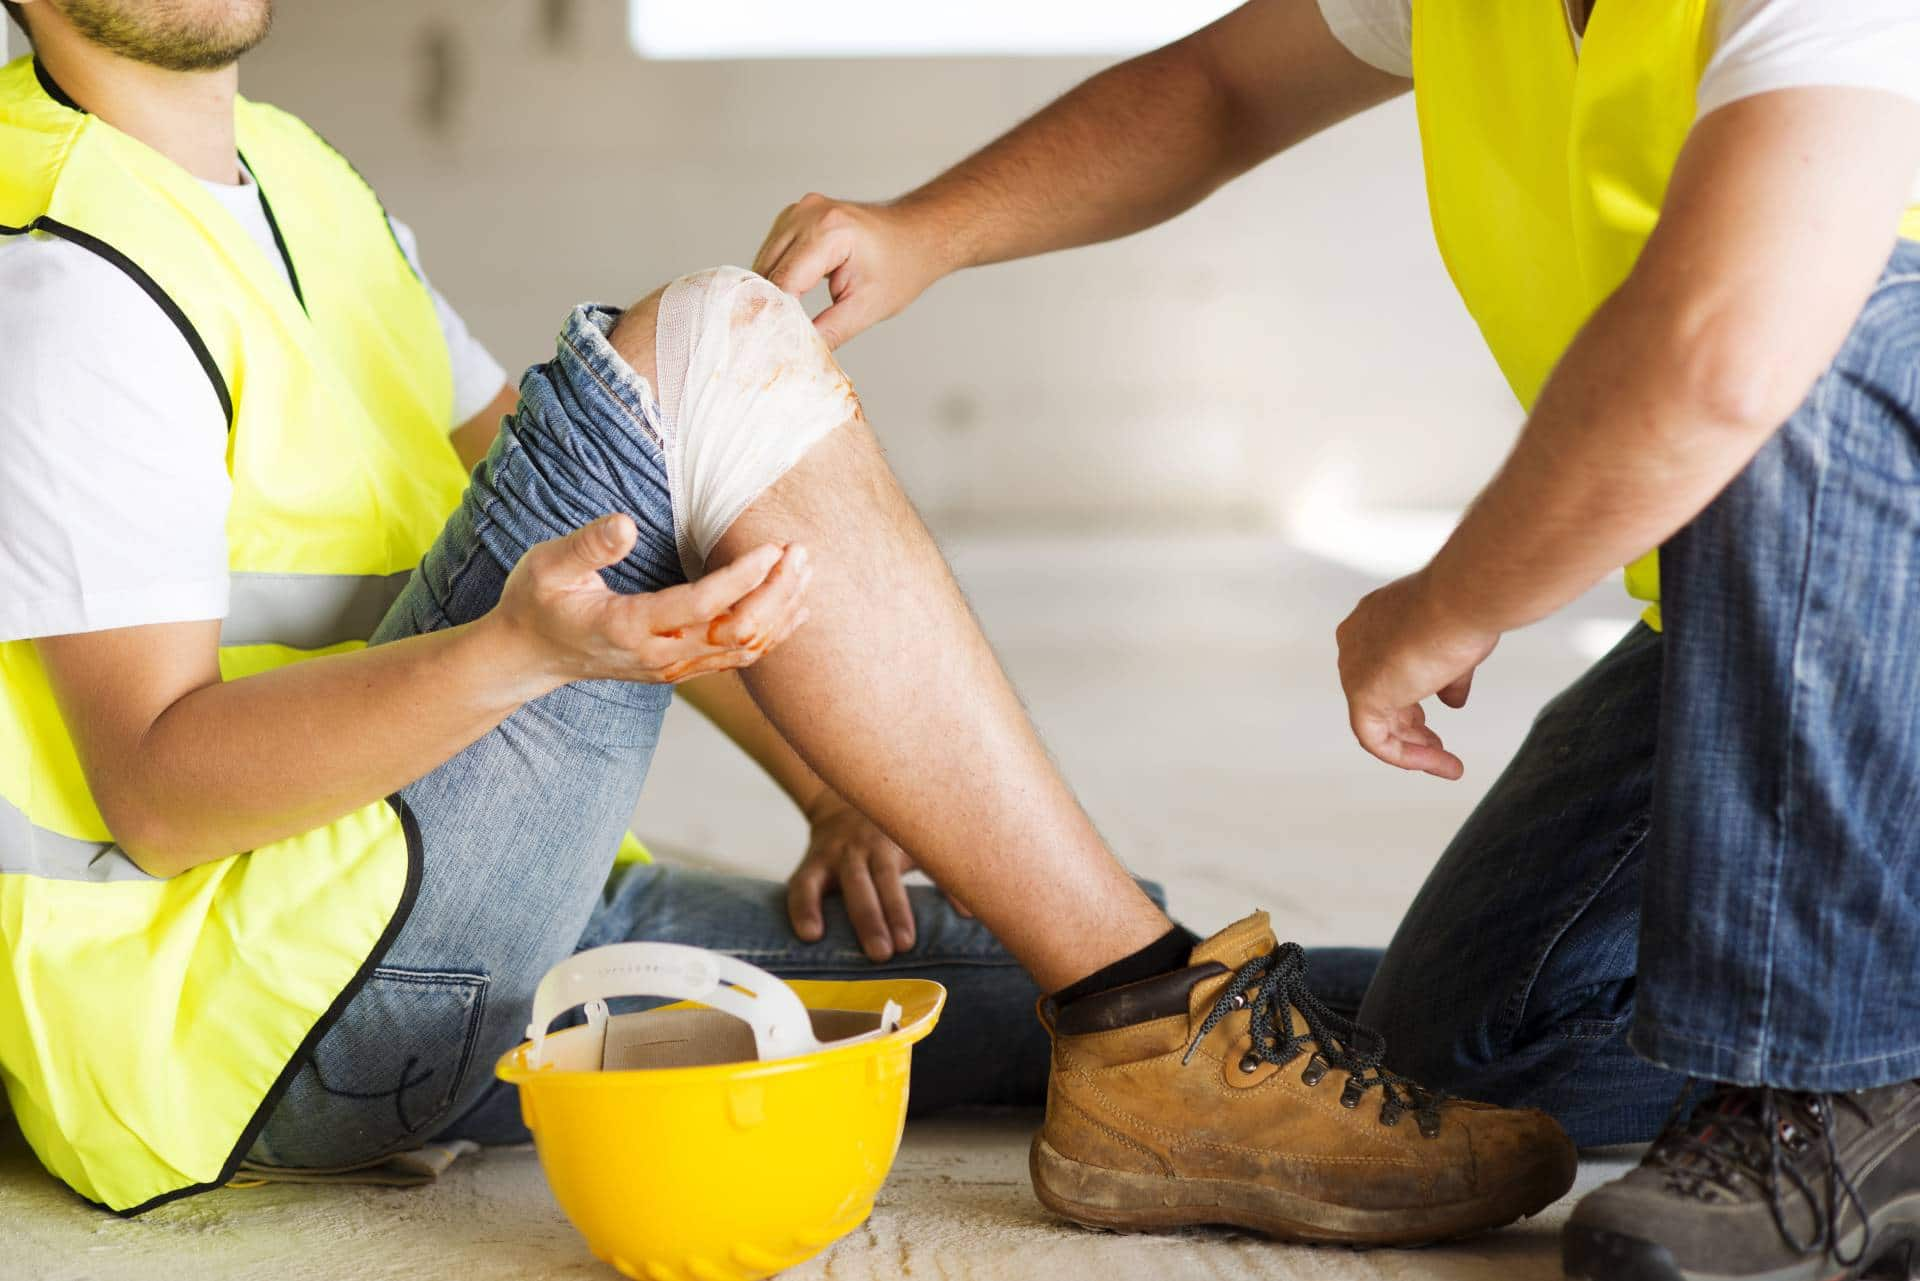 Injured on the job? Schedule a free consulation with an Angell Law Firm Personal Injury Lawyer